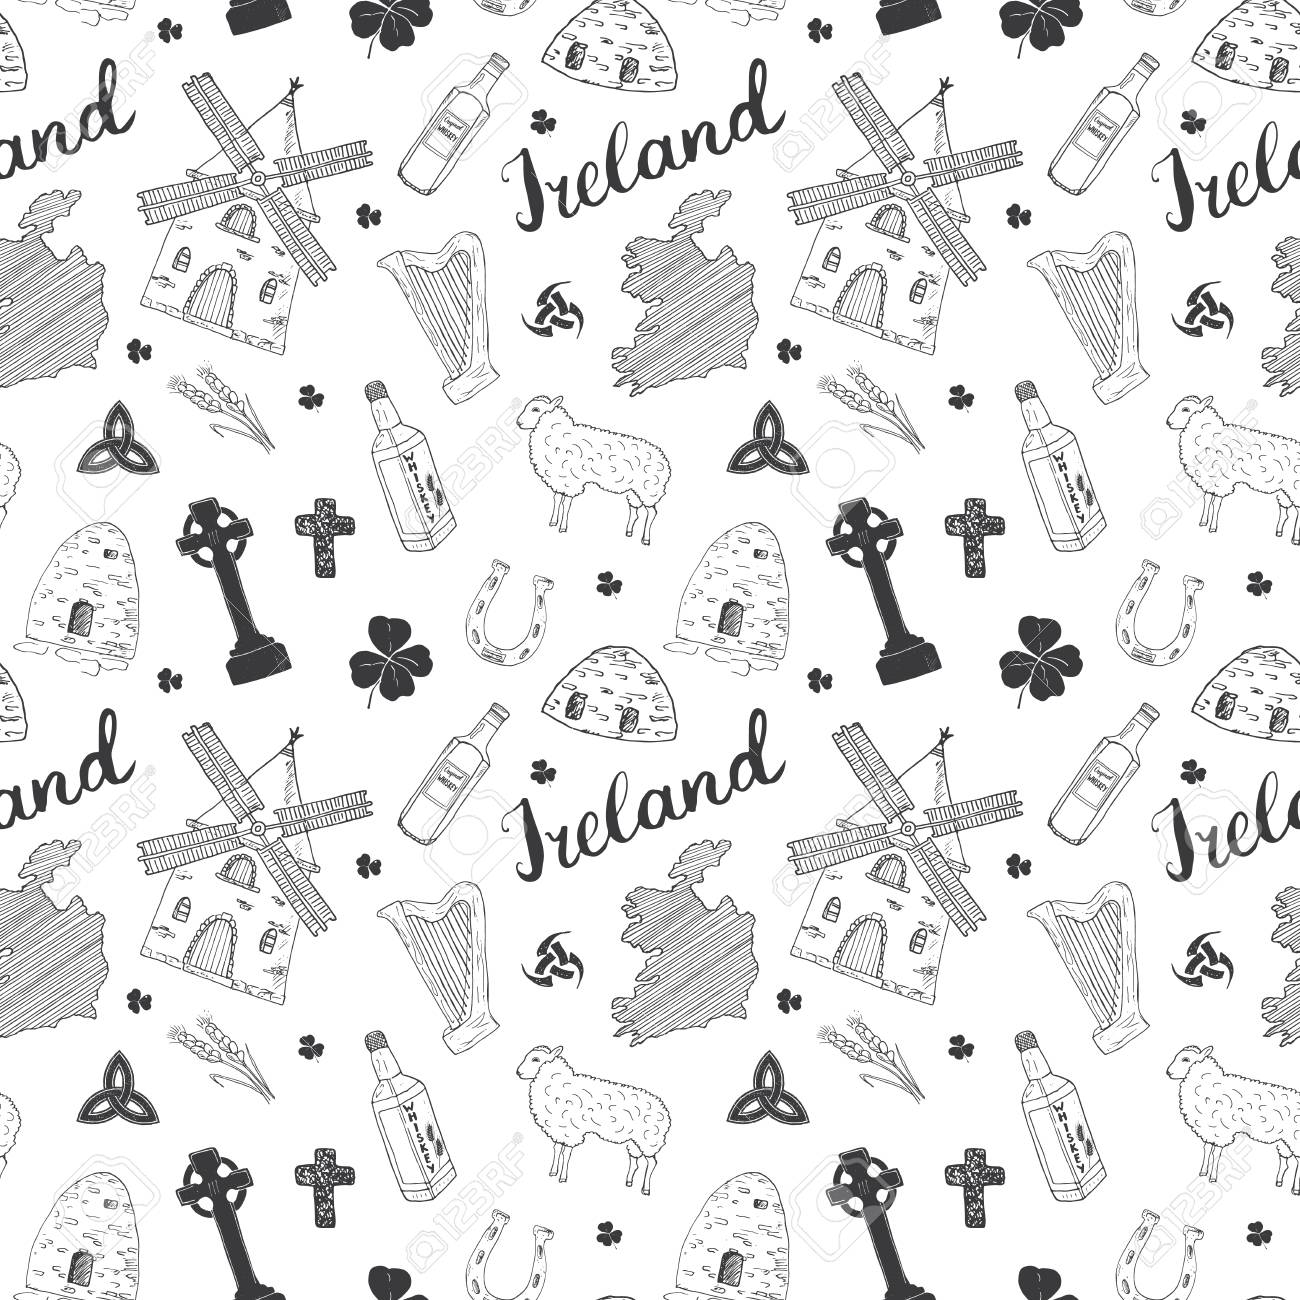 Sketch Map Of Ireland.Ireland Sketch Doodles Seamless Pattern Irish Elements With